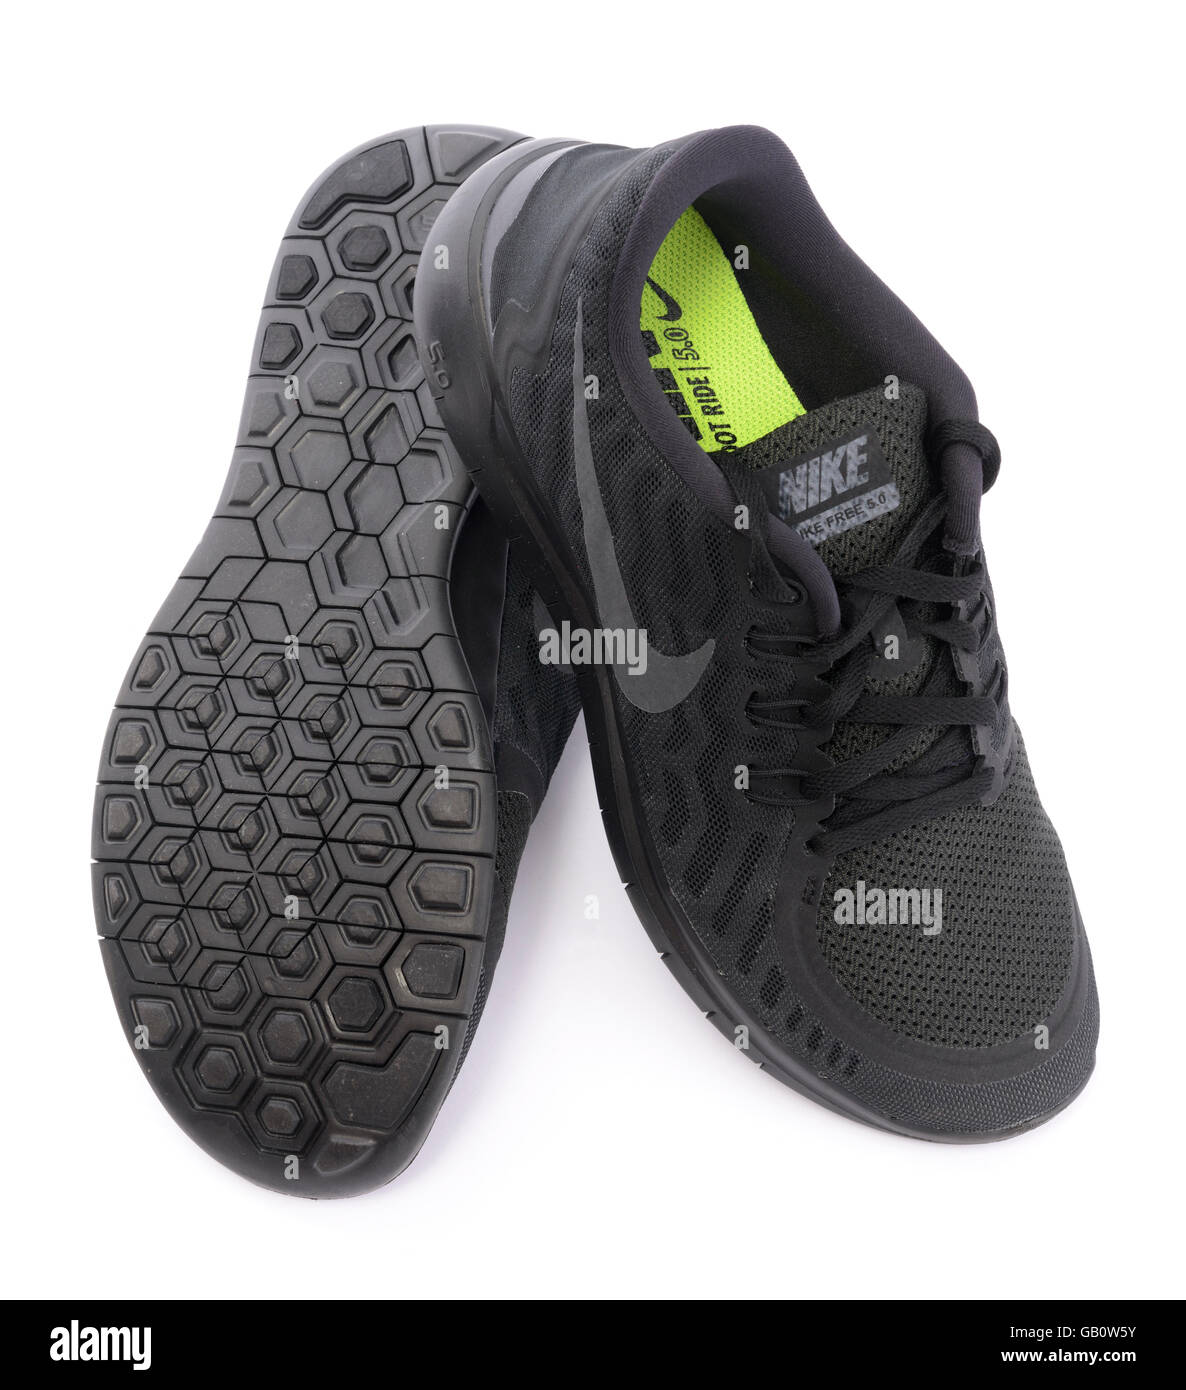 ac33a85424af30 ... Nike Free 5.0 Barefoot Ride black trainers isolated on white background Nike  Free 3.0 Flyknit ...